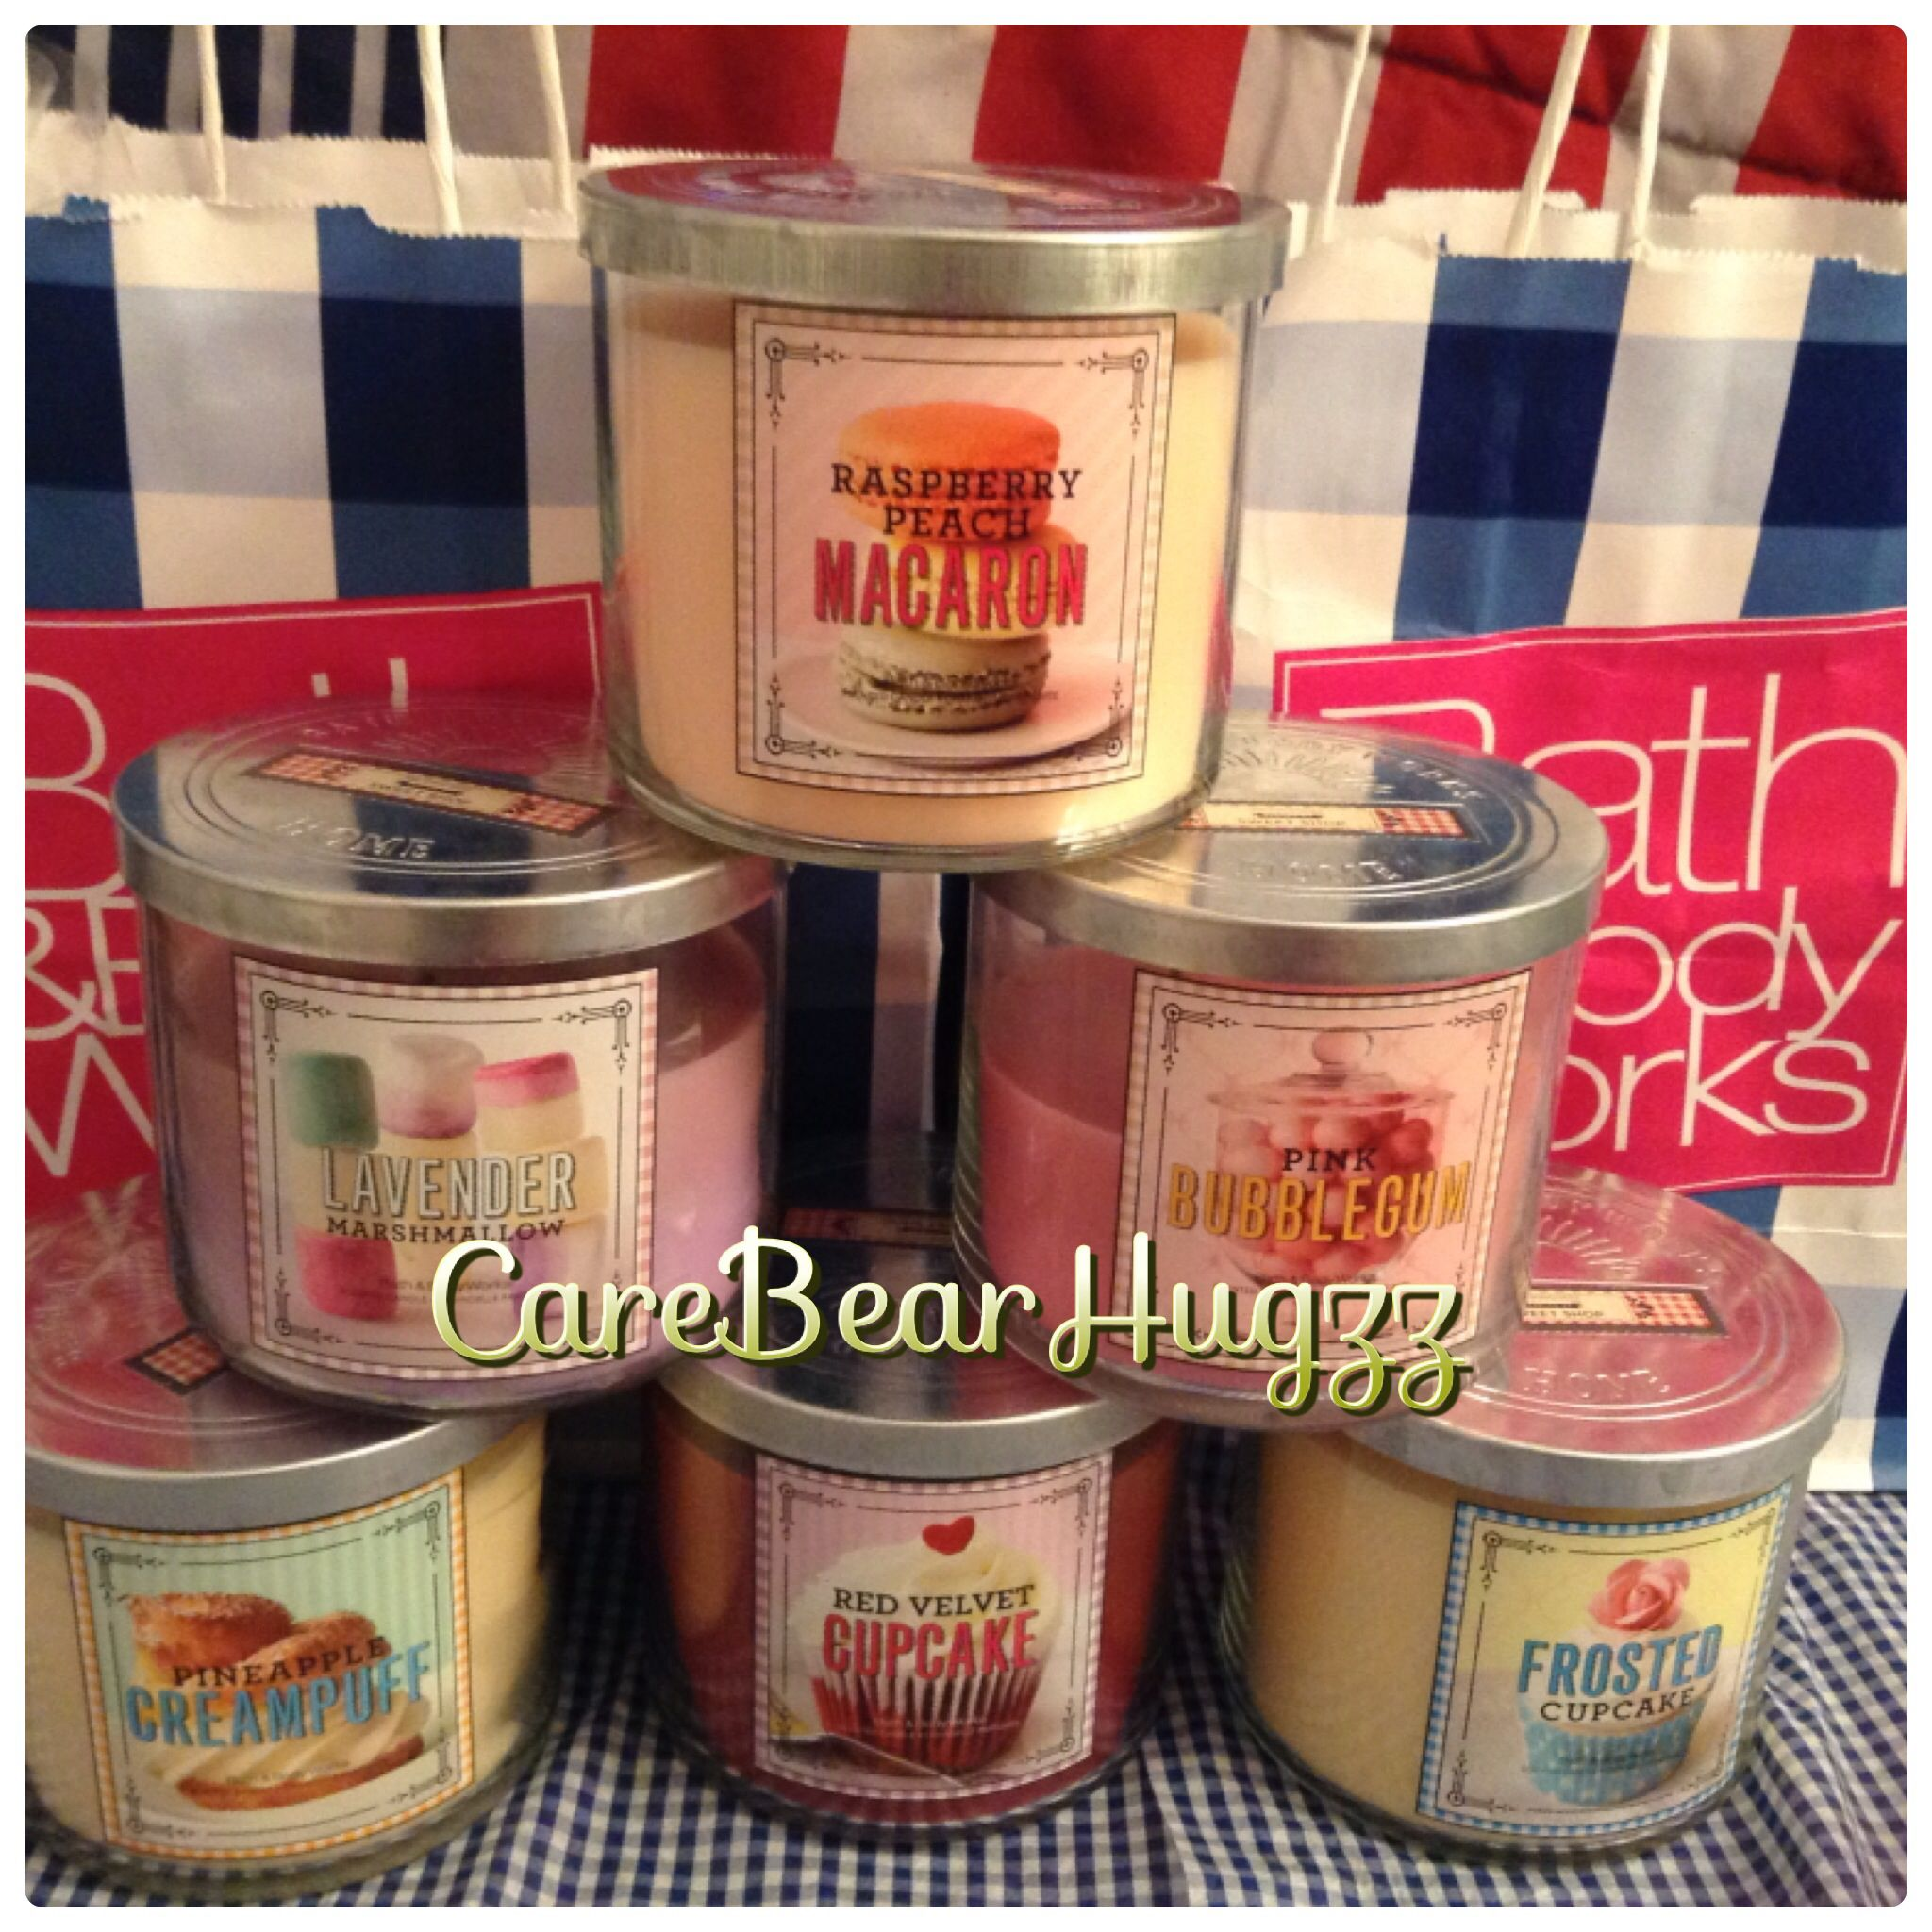 Bath and Body Works Sweet Shop candle collection 2013/2014